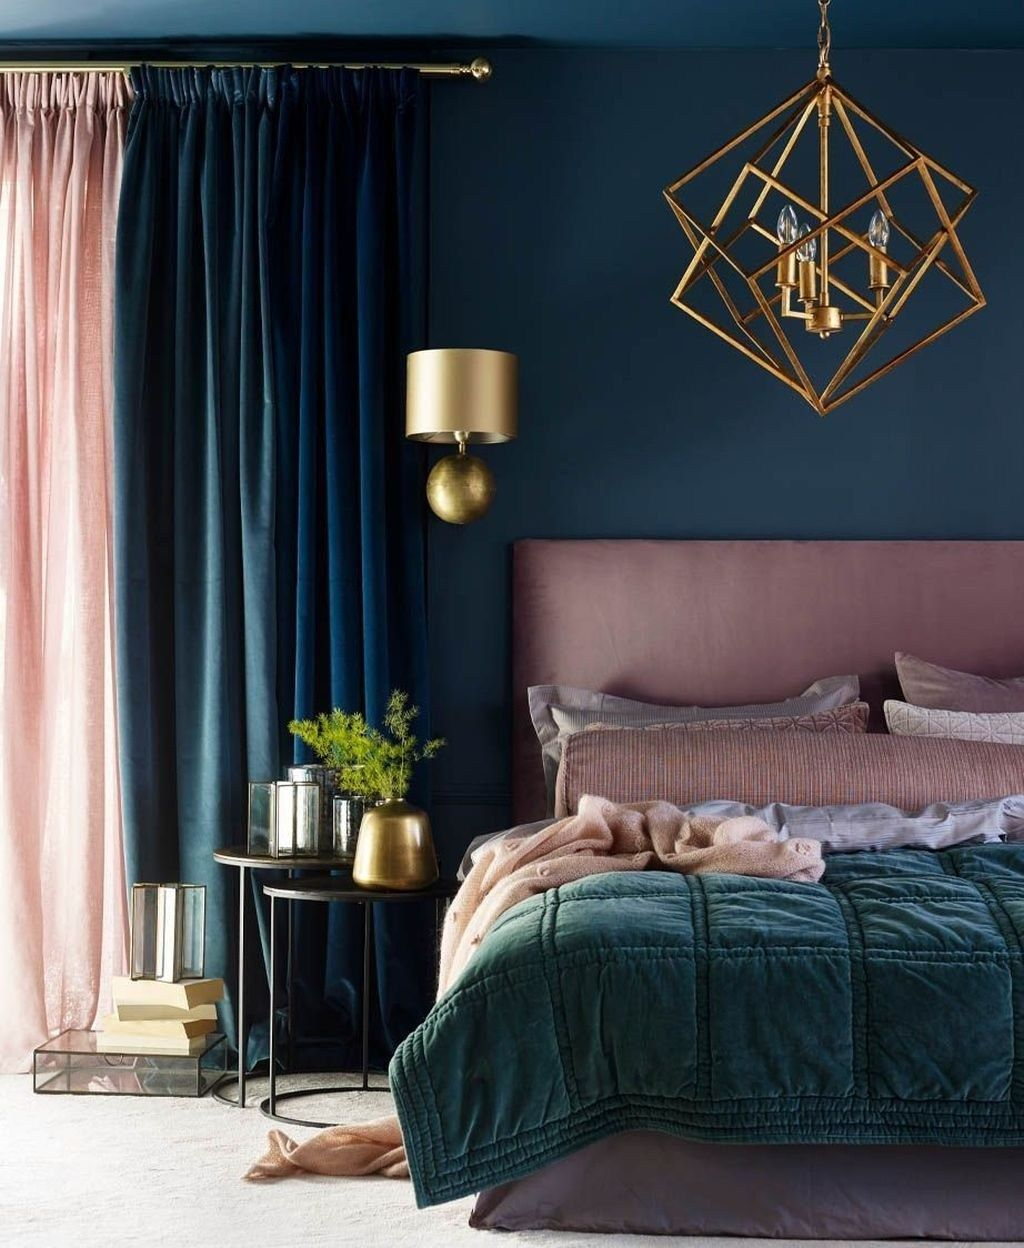 Affordable Bedroom Design Ideas 38 Home Decor Bedroom Luxurious Bedrooms Apartment Interior